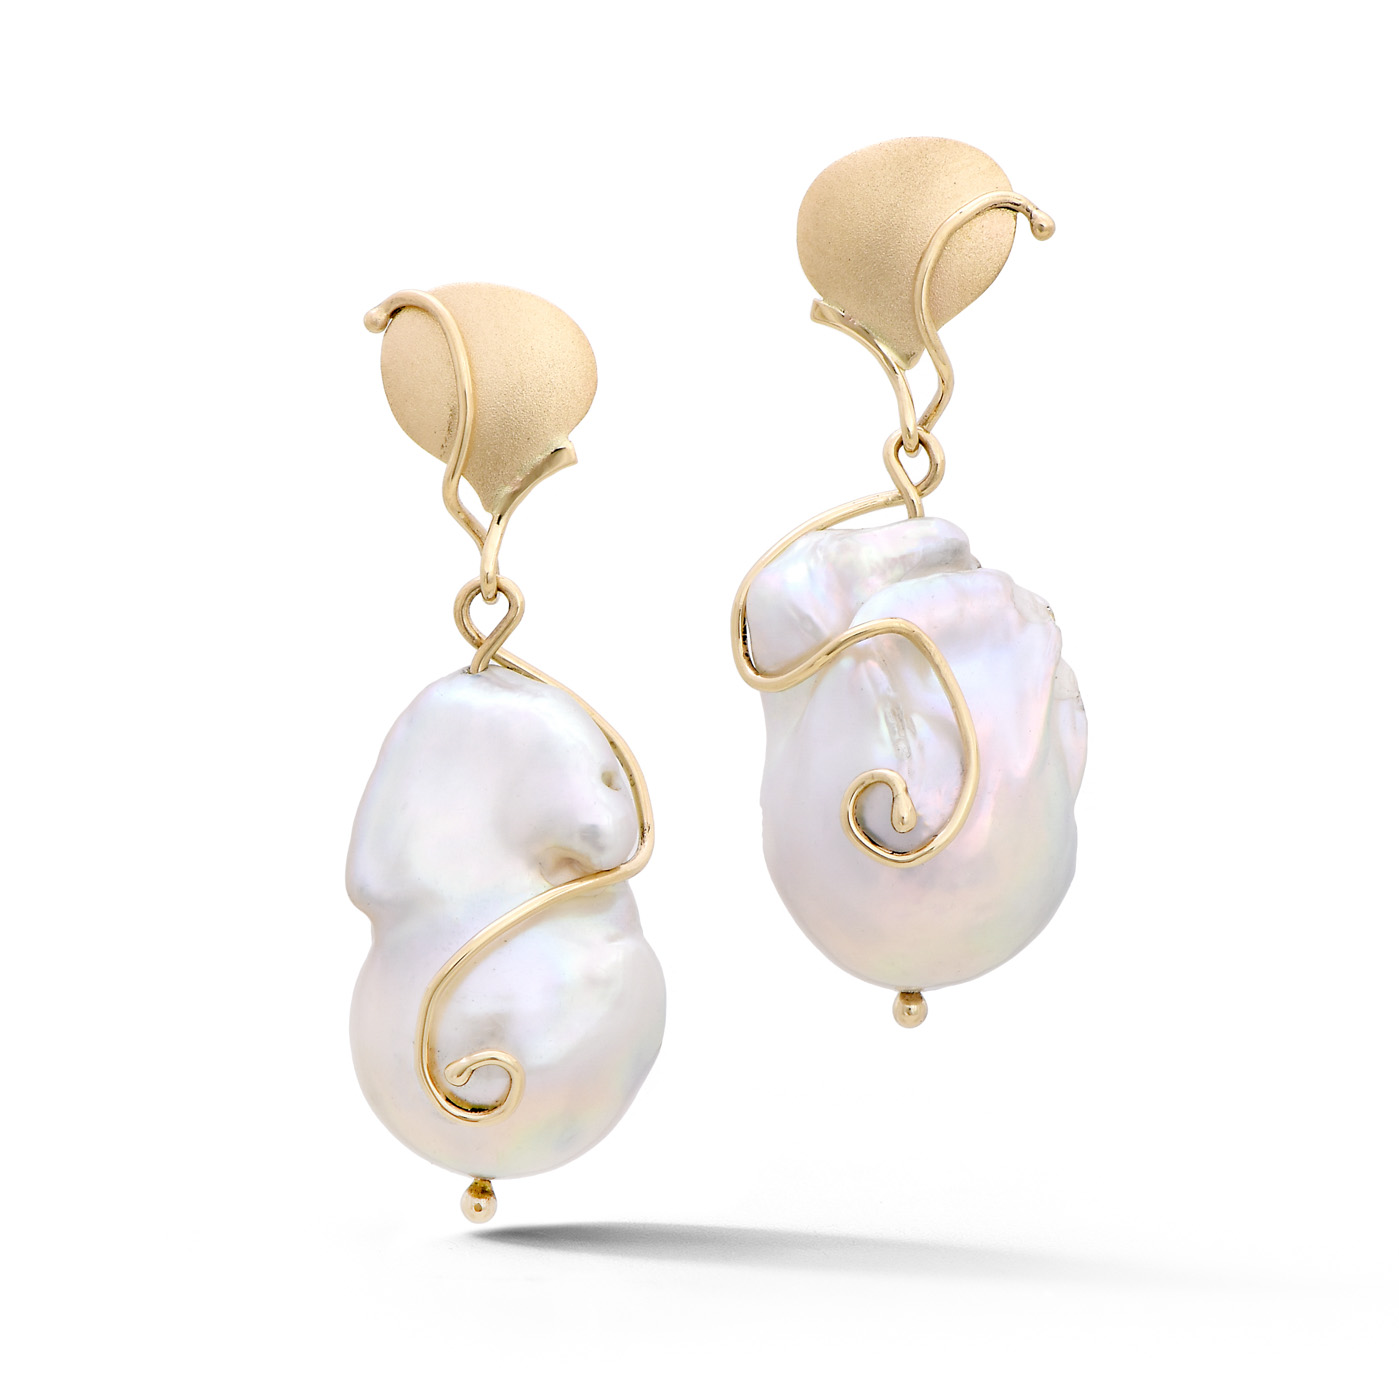 htm alternative aaa sea keshi p studs earrings views pearl stud baroque white south flawless